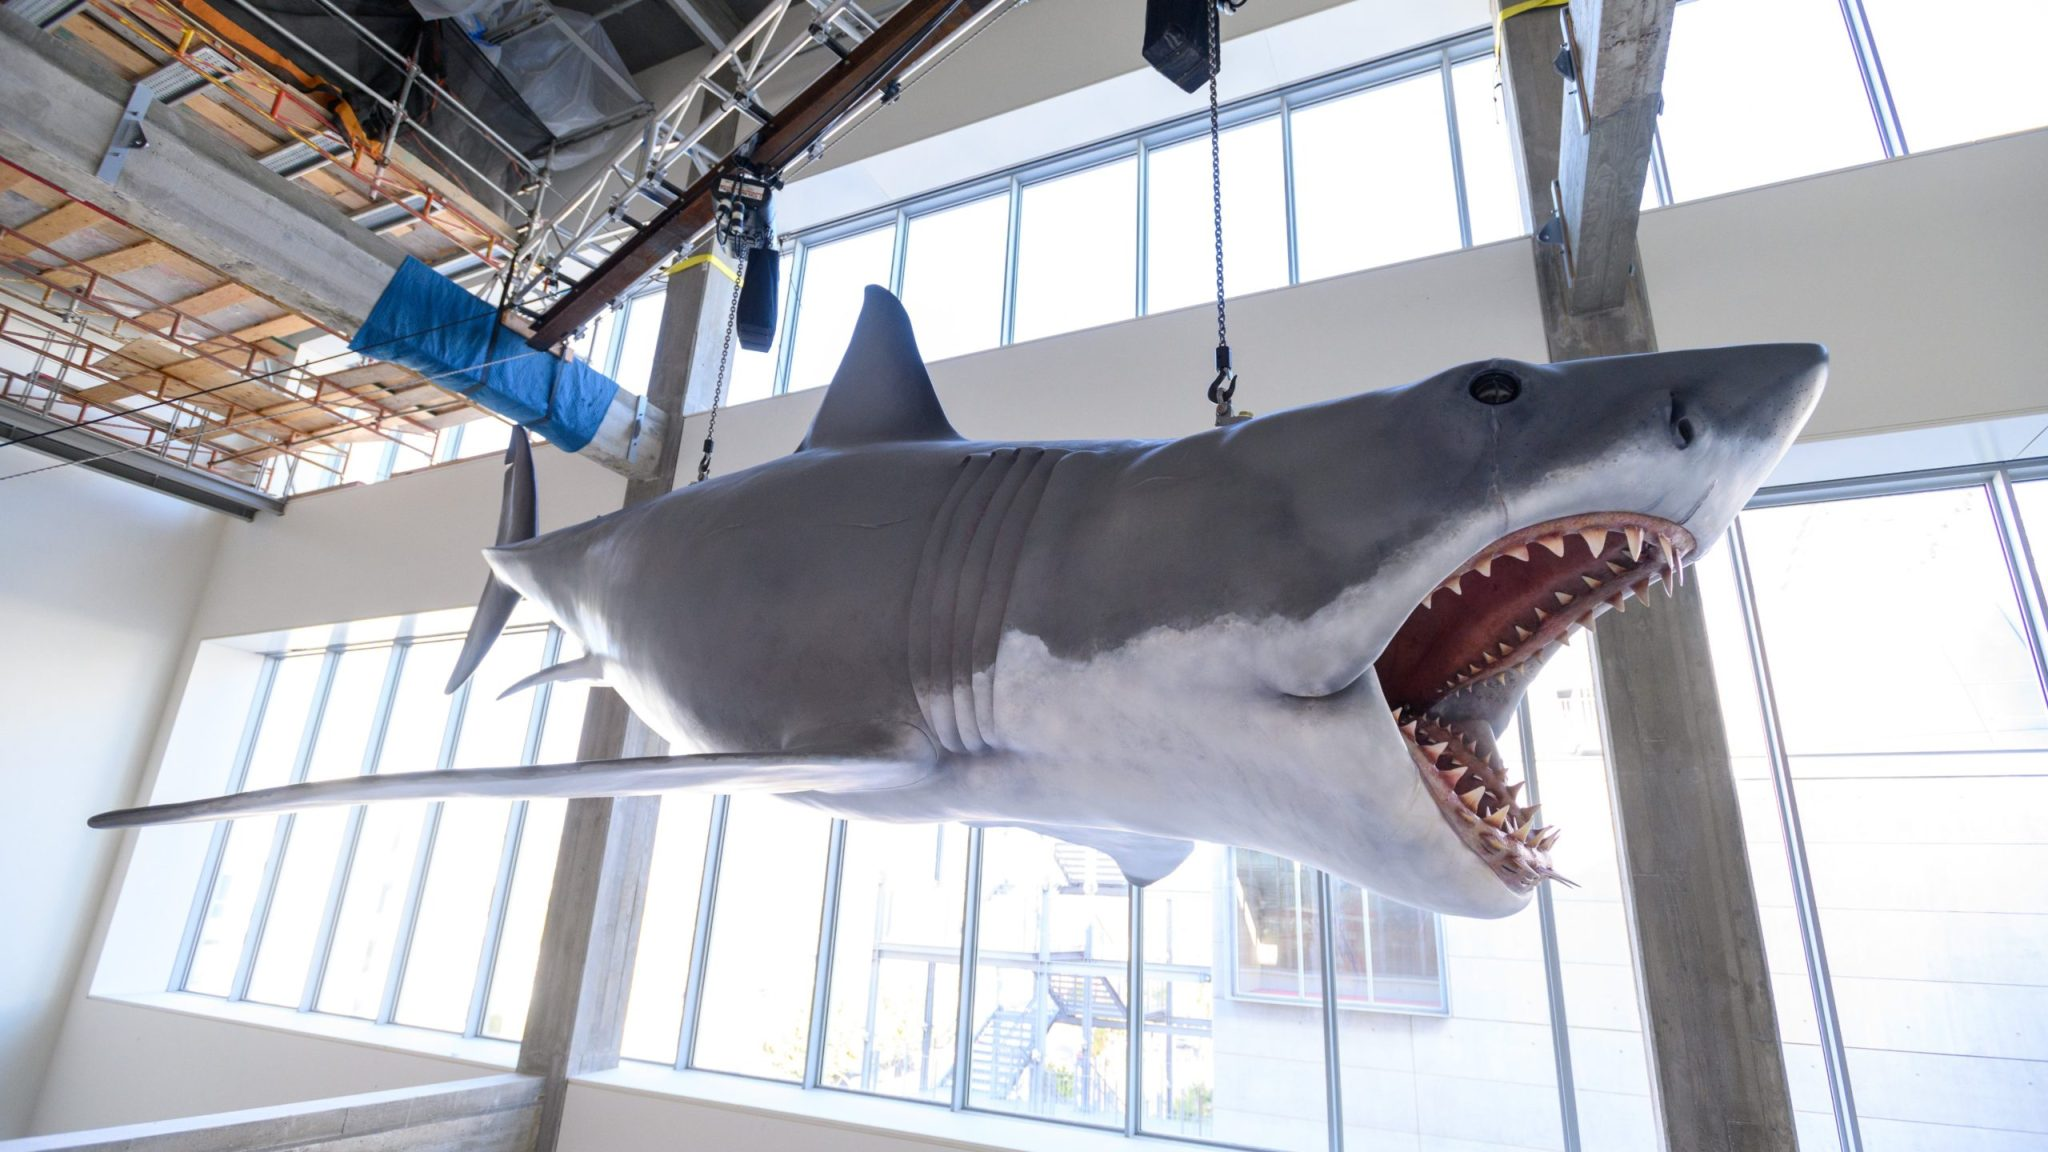 WATCH >> Academy Museum of Motion Pictures Just Installed the Only Surviving Shark Model from 'Jaws'